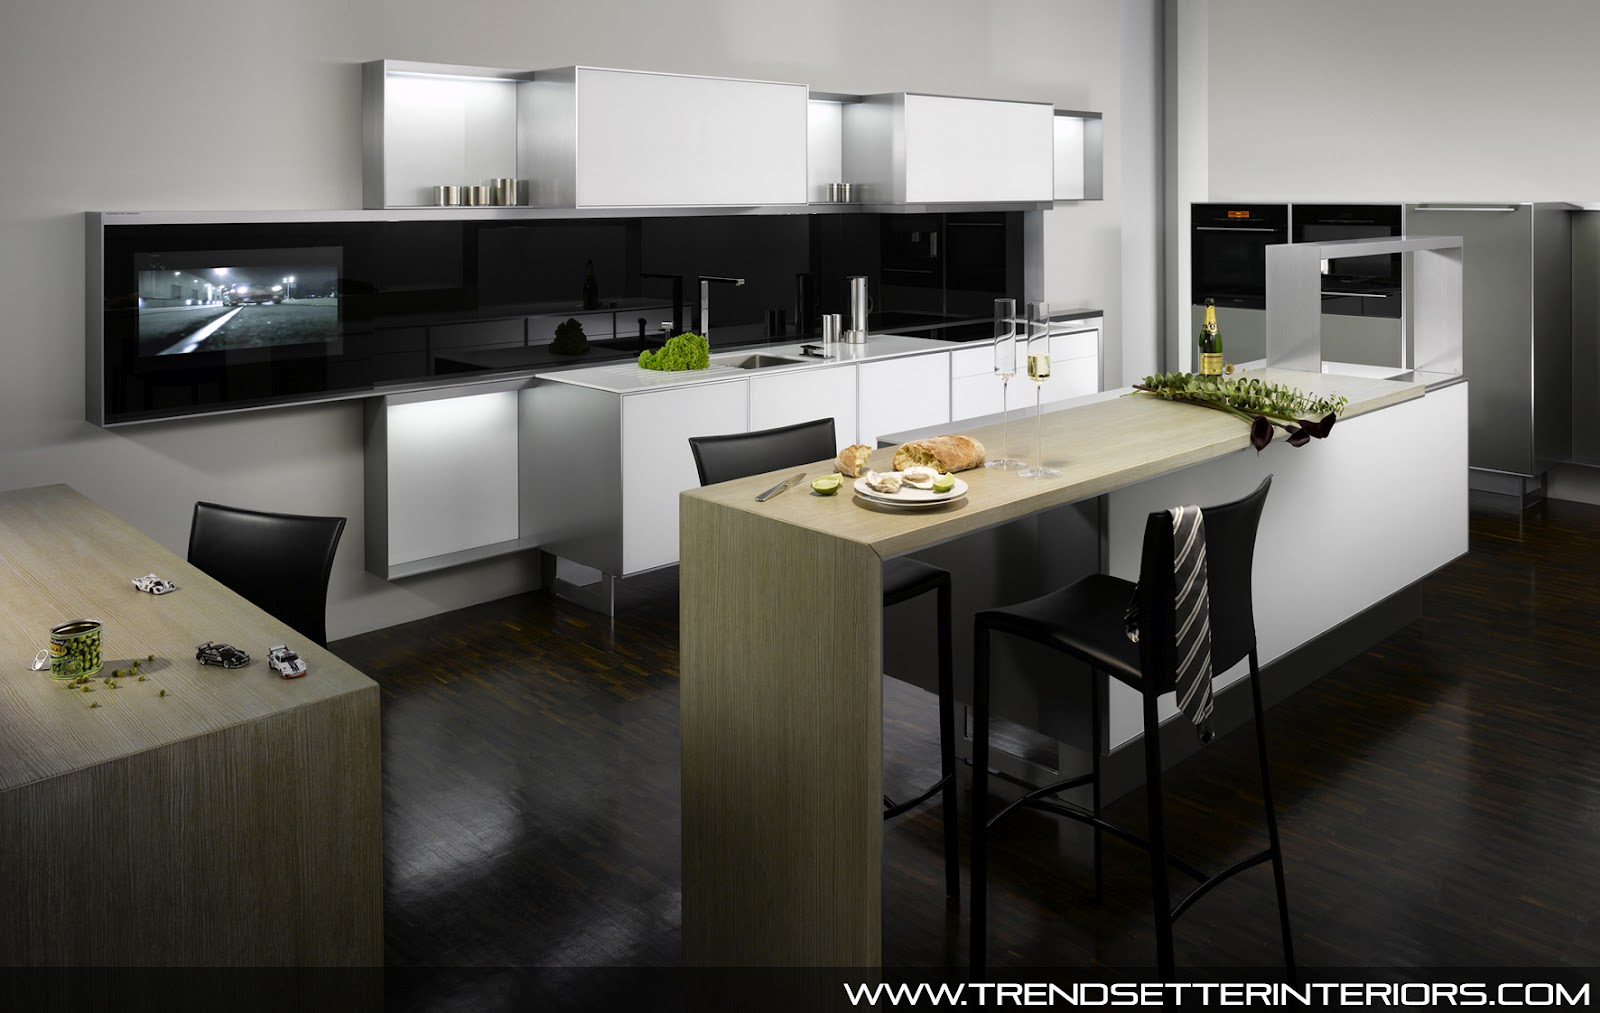 Stunning design kitchen cfvilhh